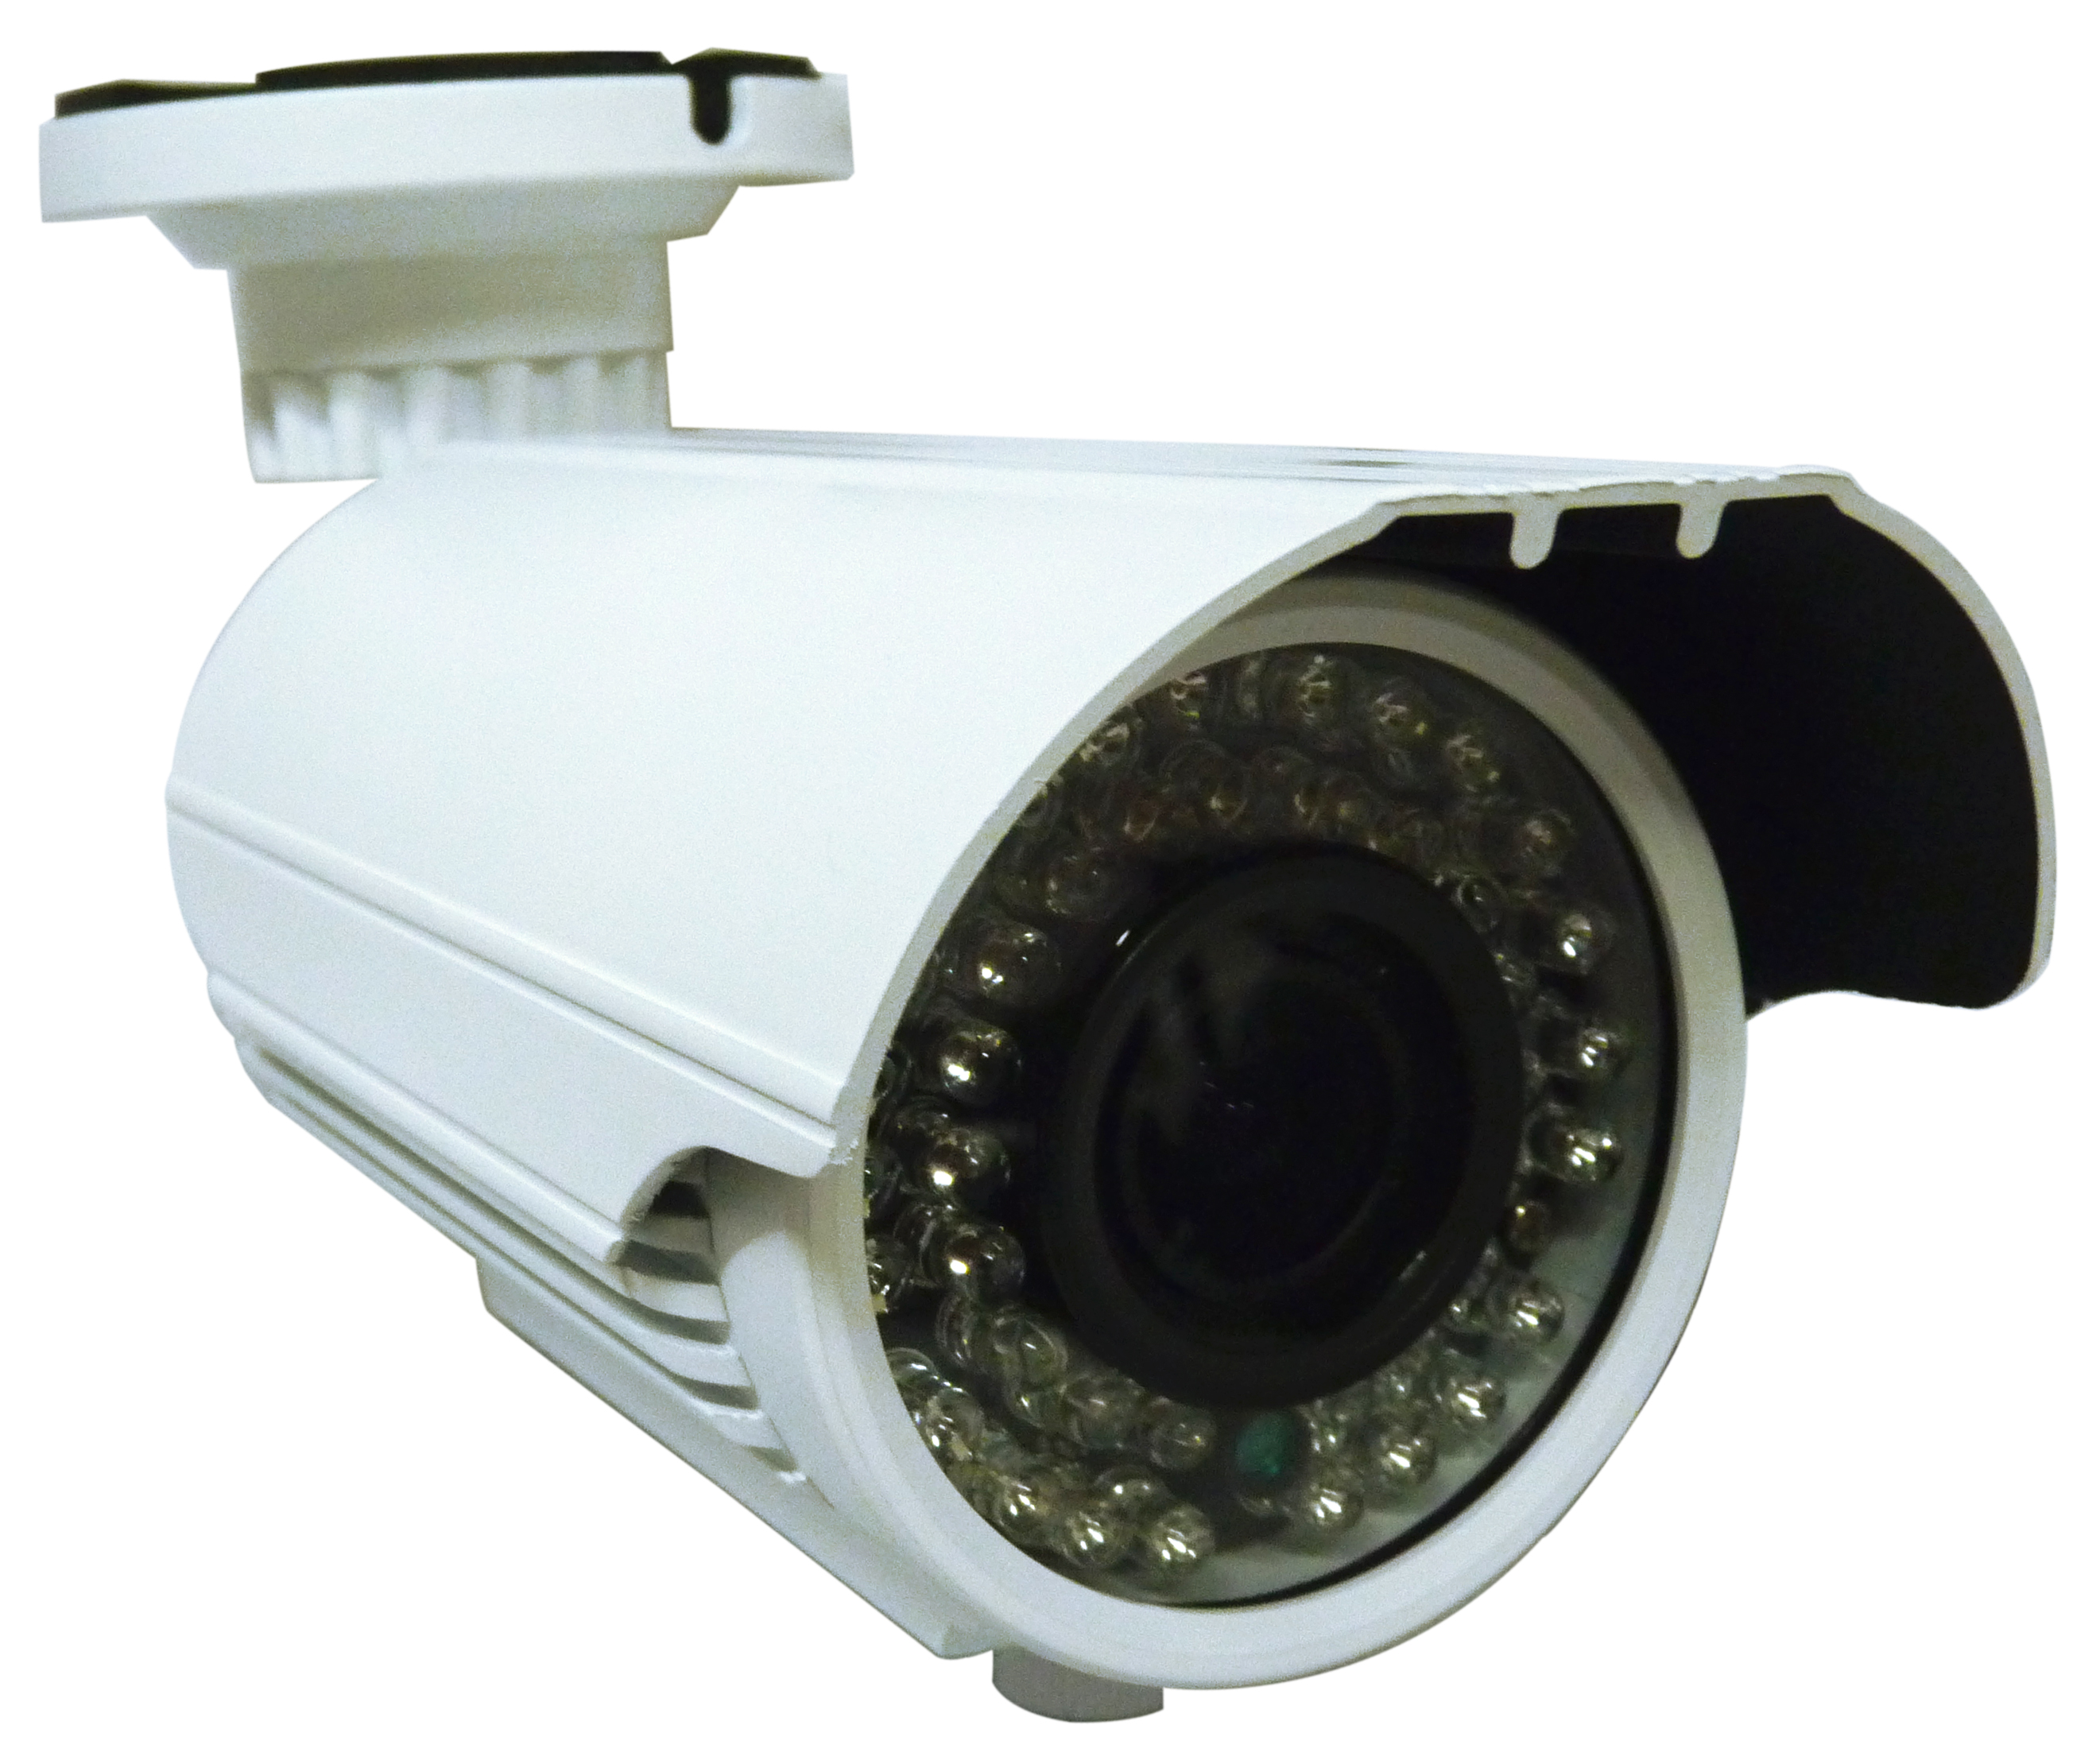 DBS 116W - 700TVL CCTV Bullet Security Camera - 1/3'' Sony Super HAD CCD II